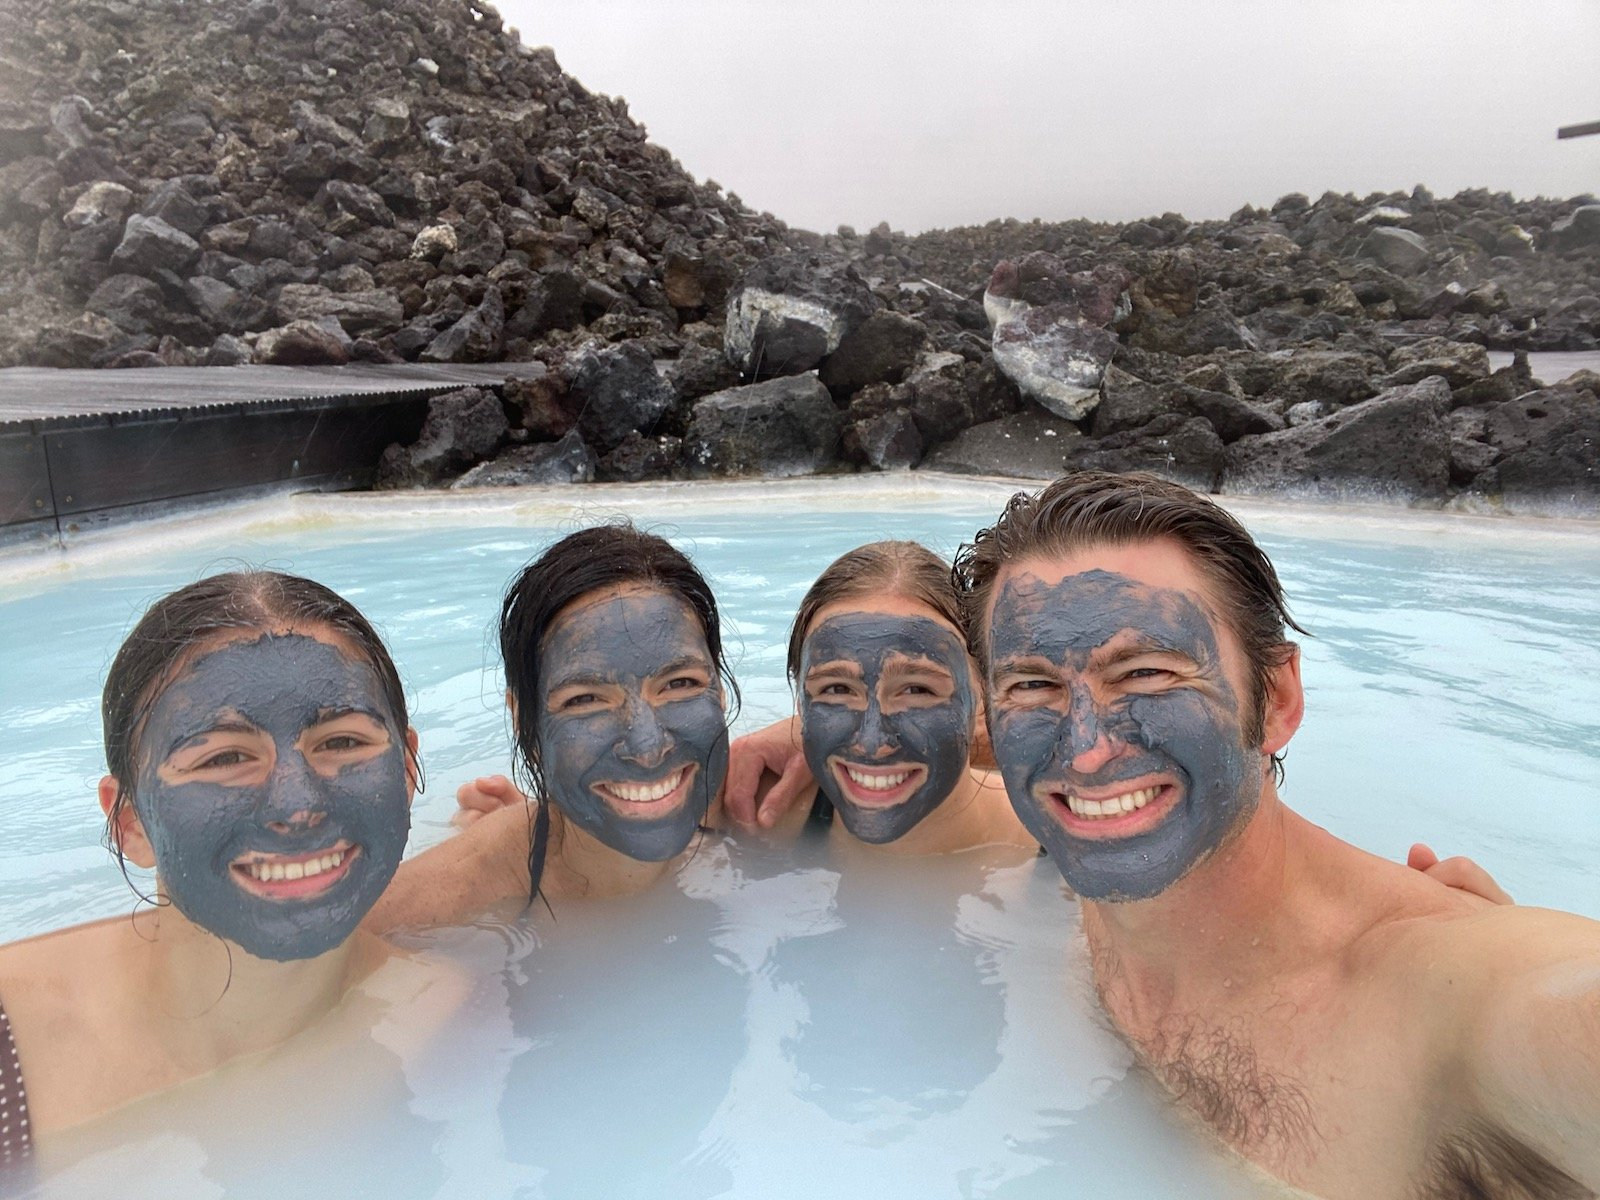 Family posing with mud masks on in the Blue Lagoon in Iceland.